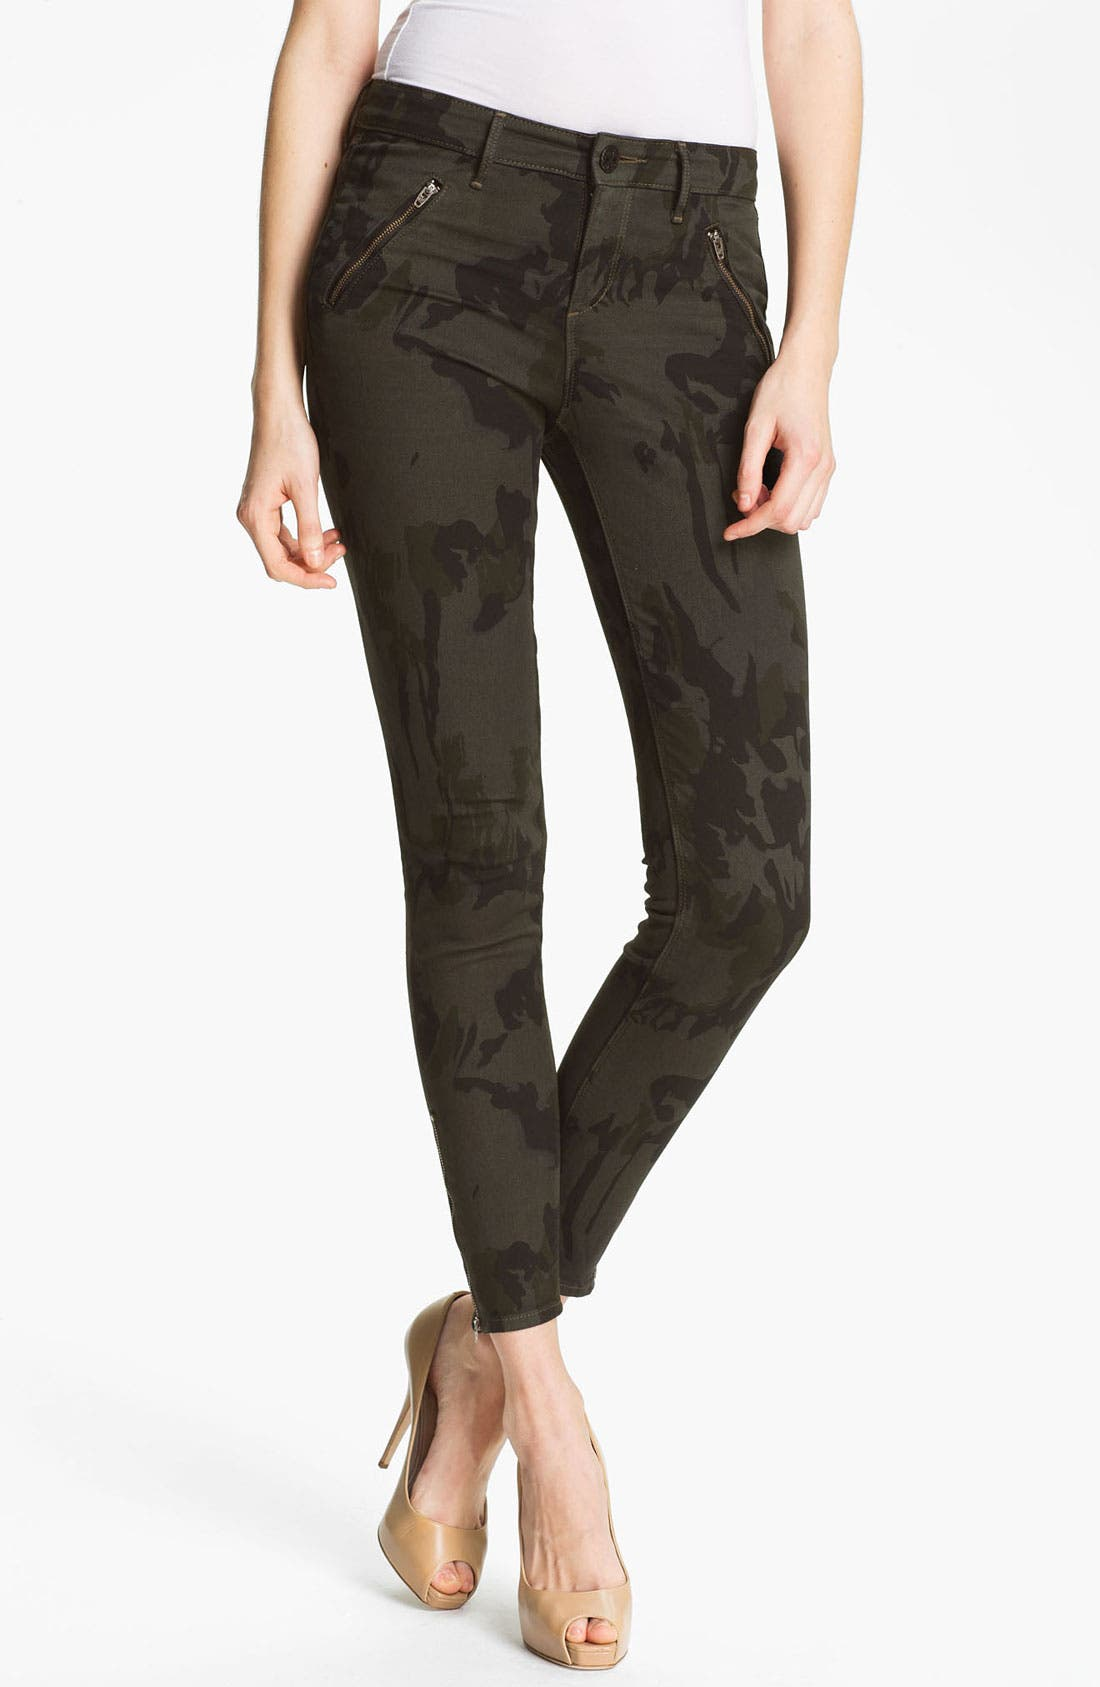 Main Image - Habitual 'Amalia' Digital Camo Print Stretch Jeans